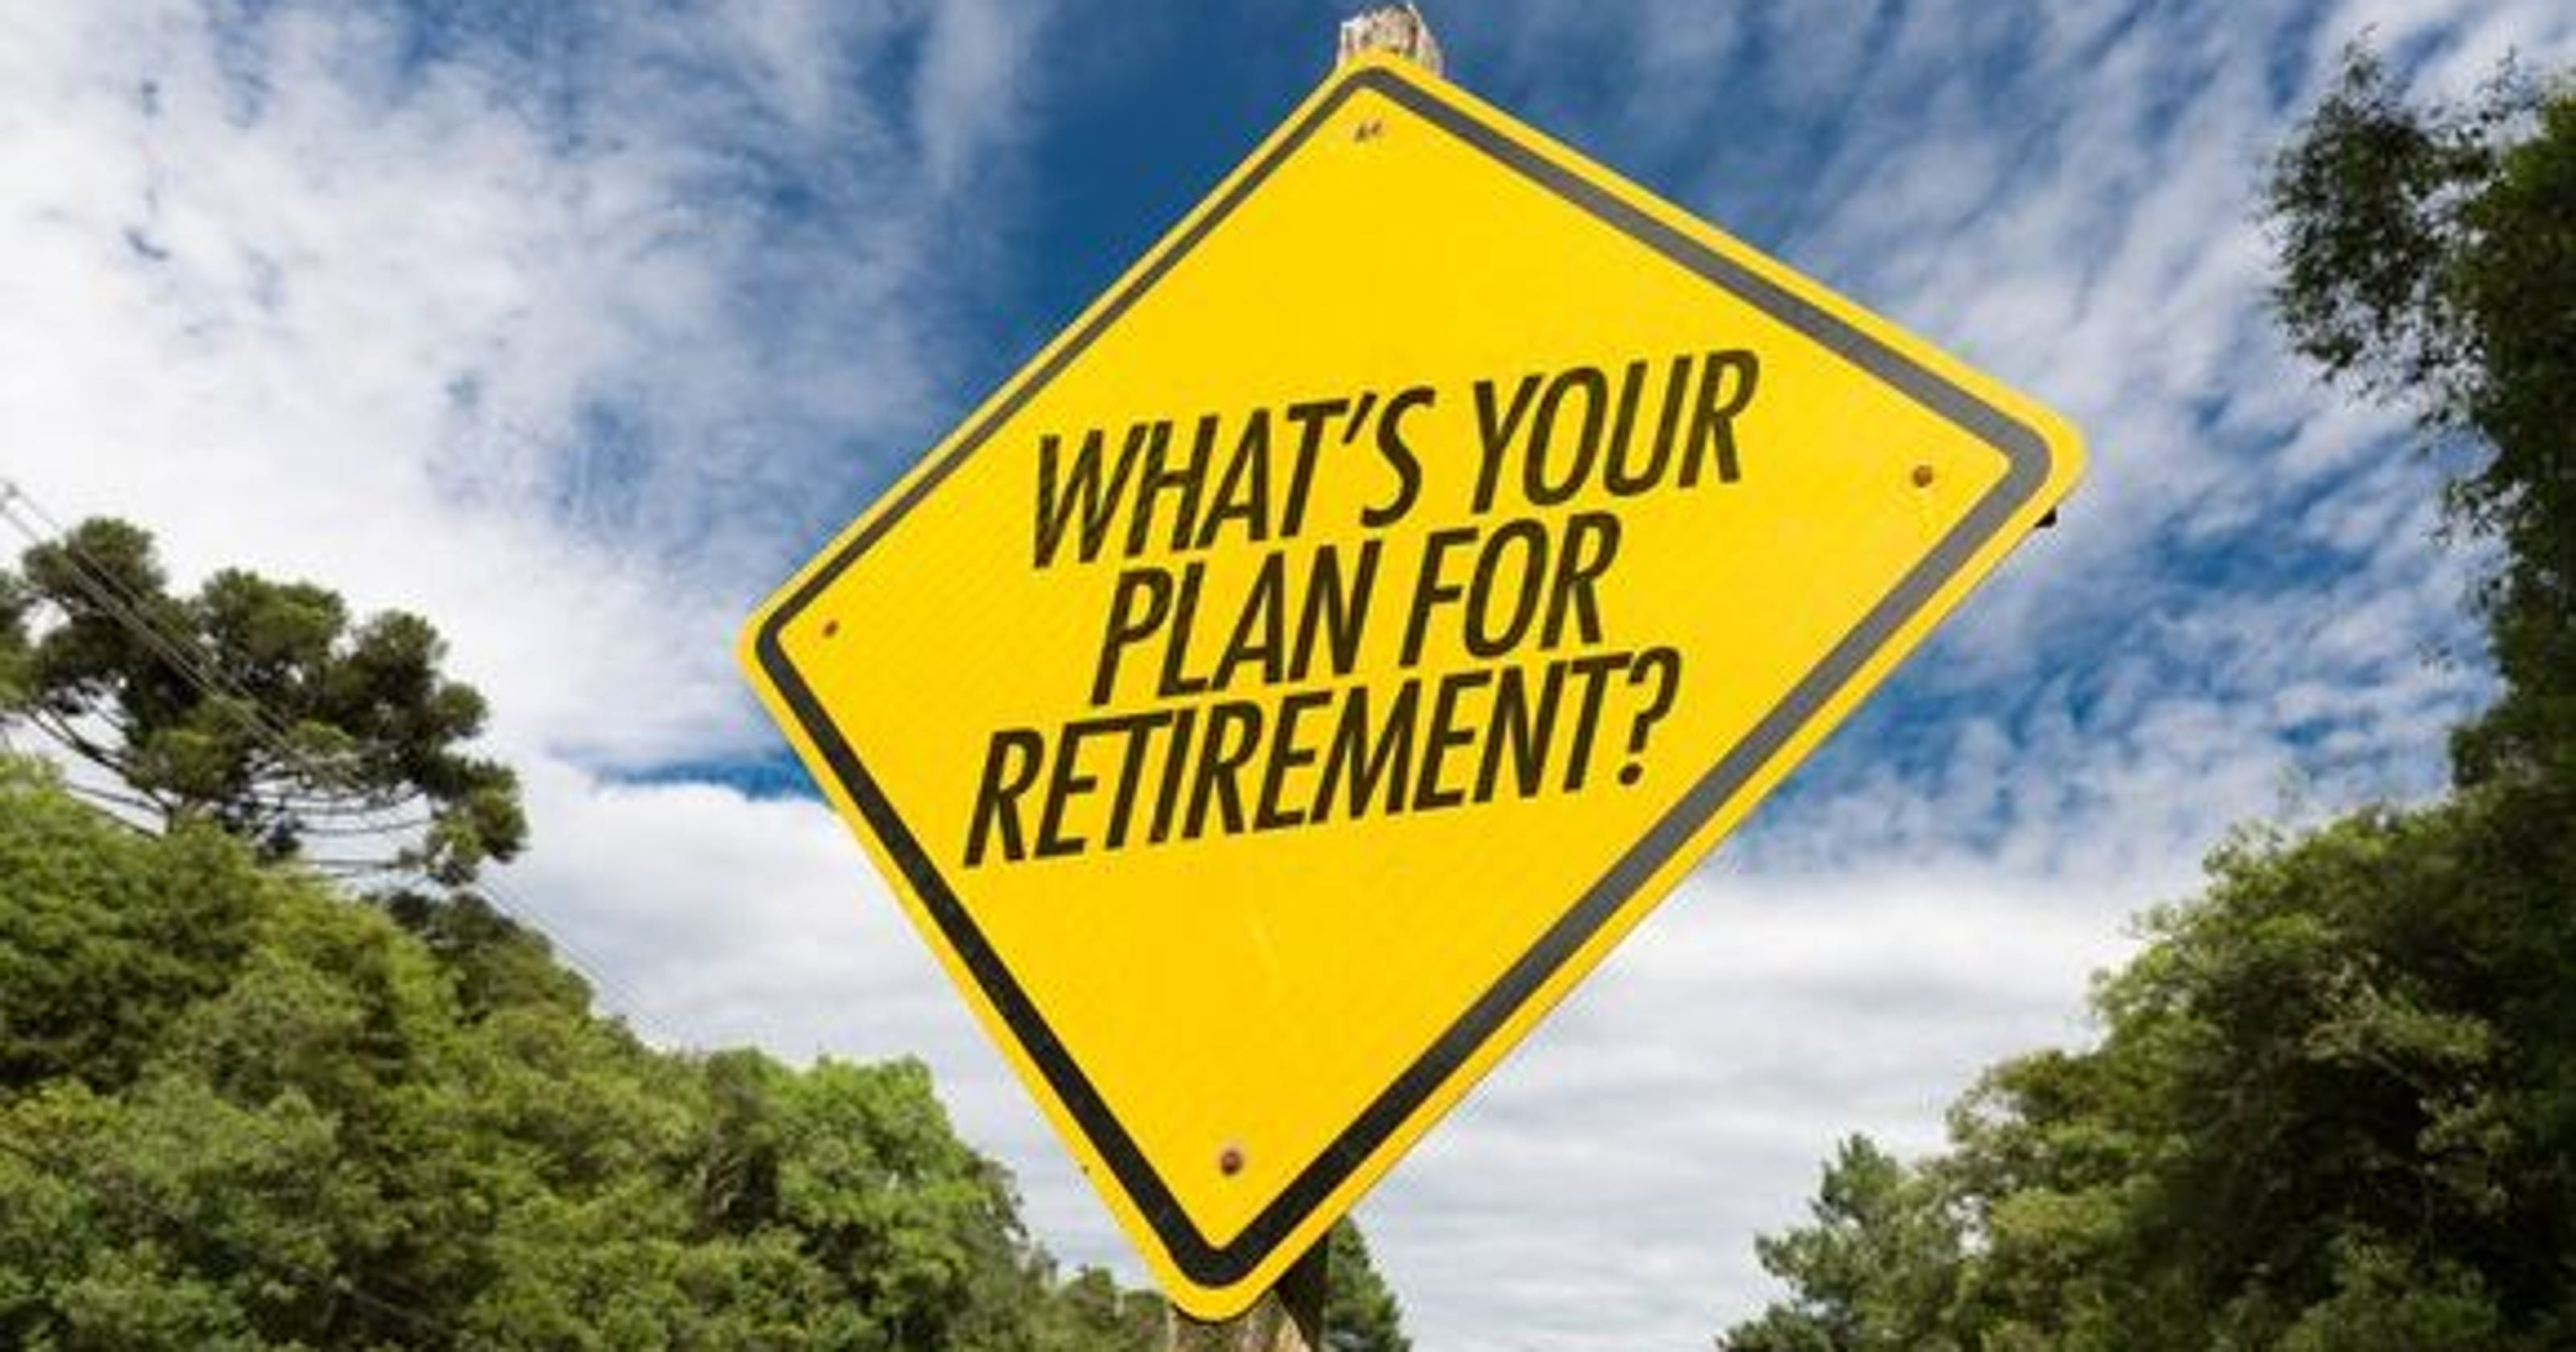 Real Estate Investment as Your Retirement Plan